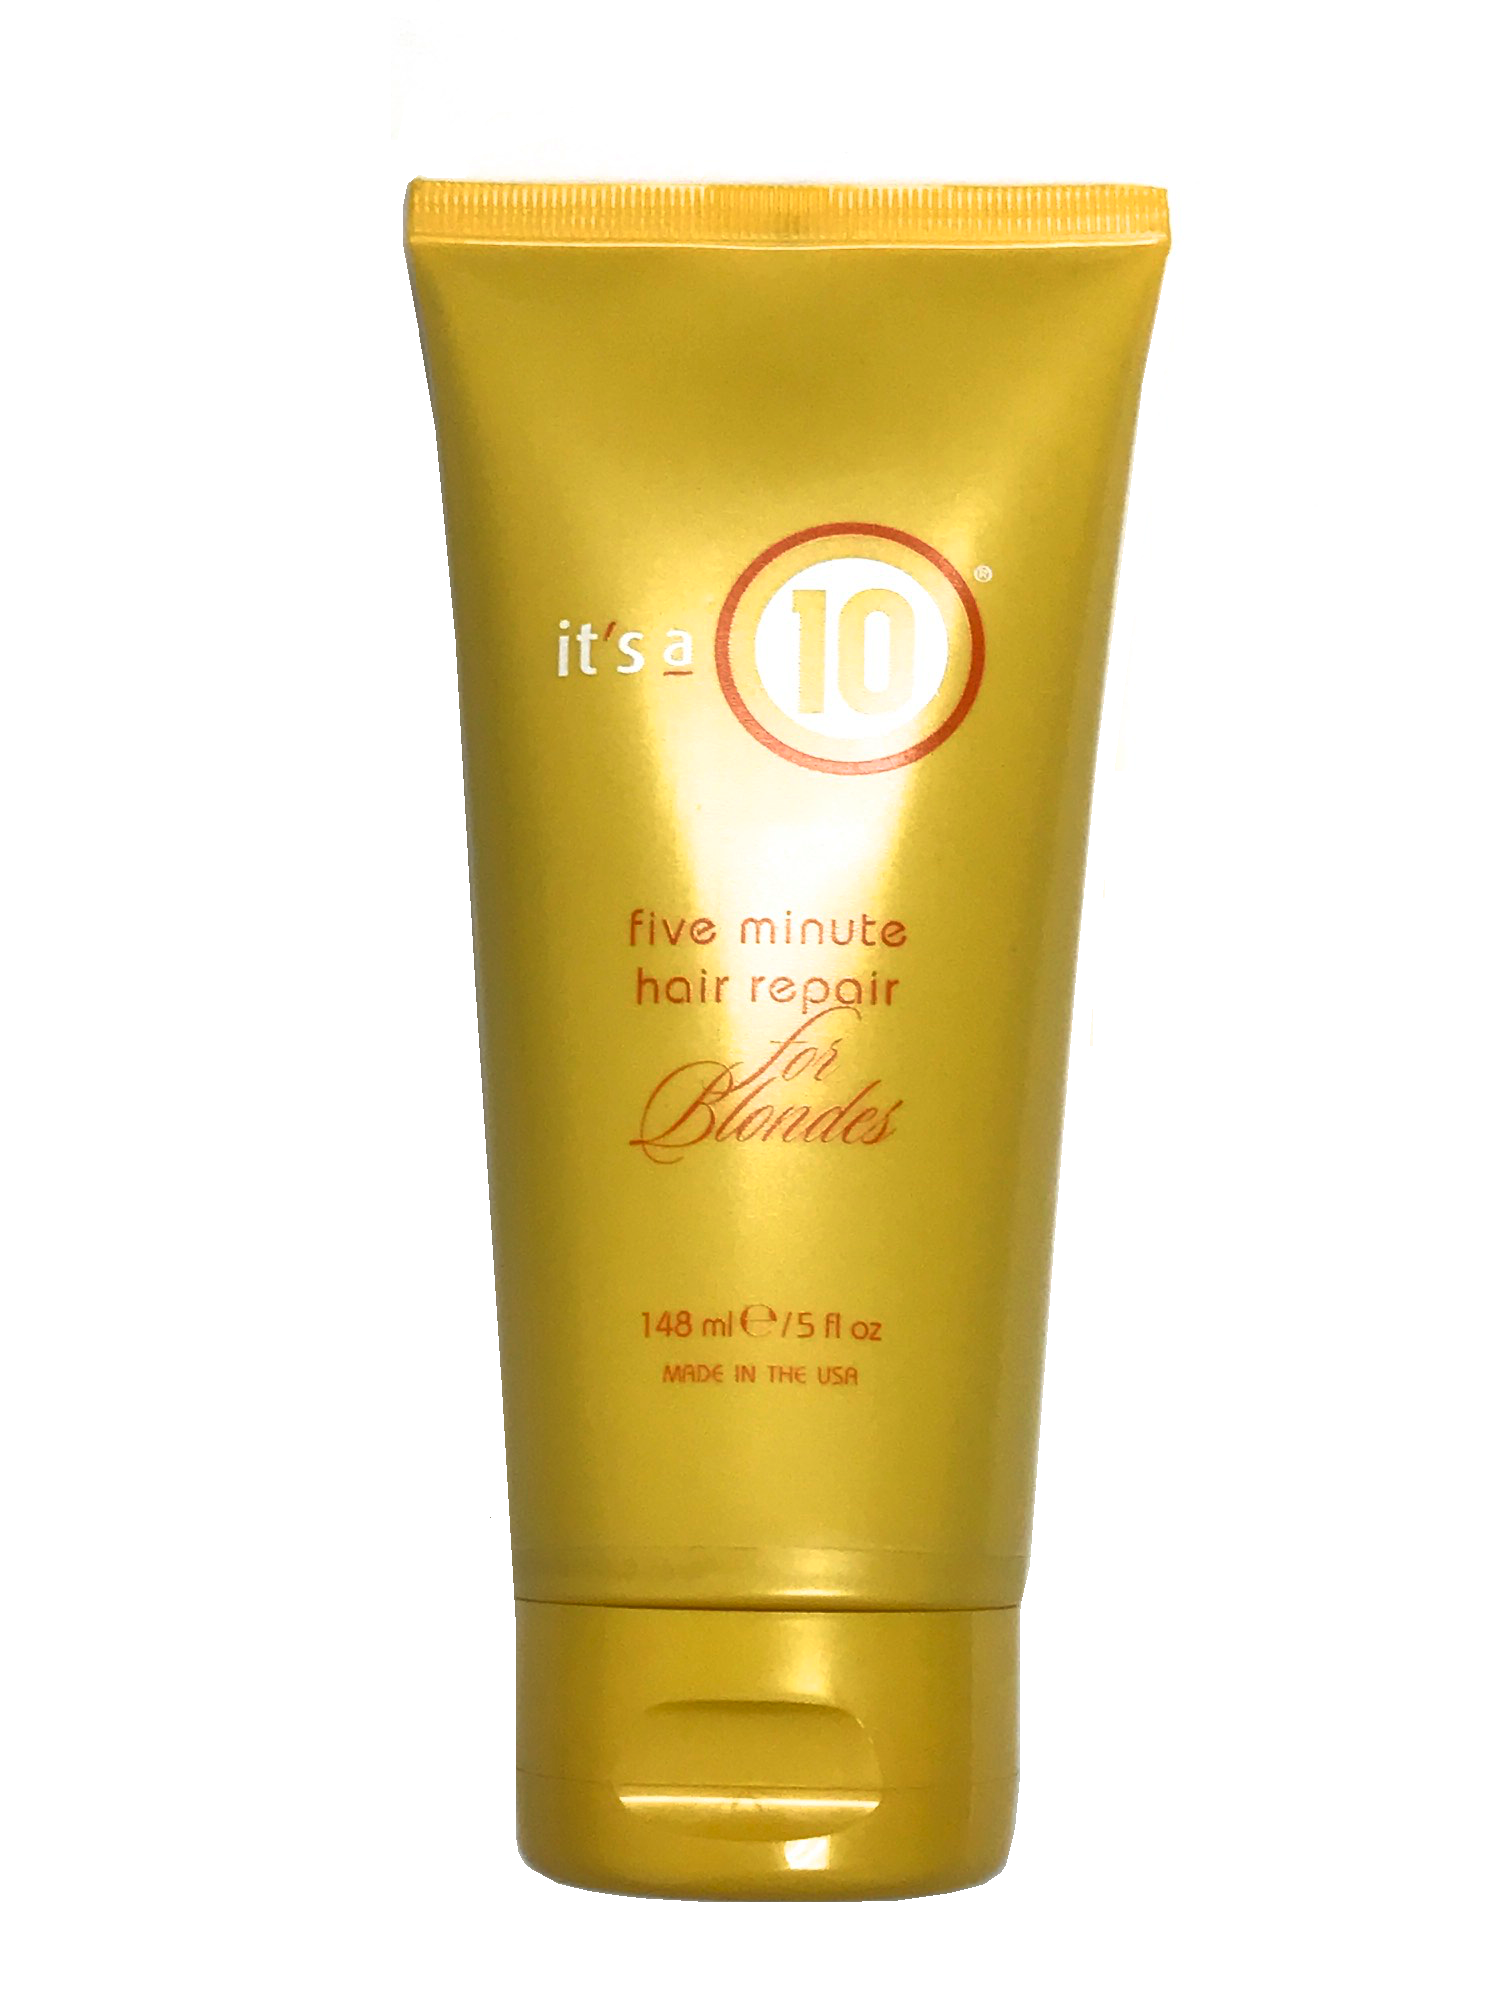 It's a 10 Five Minute Hair Repair for Blondes, 5 Fl Oz